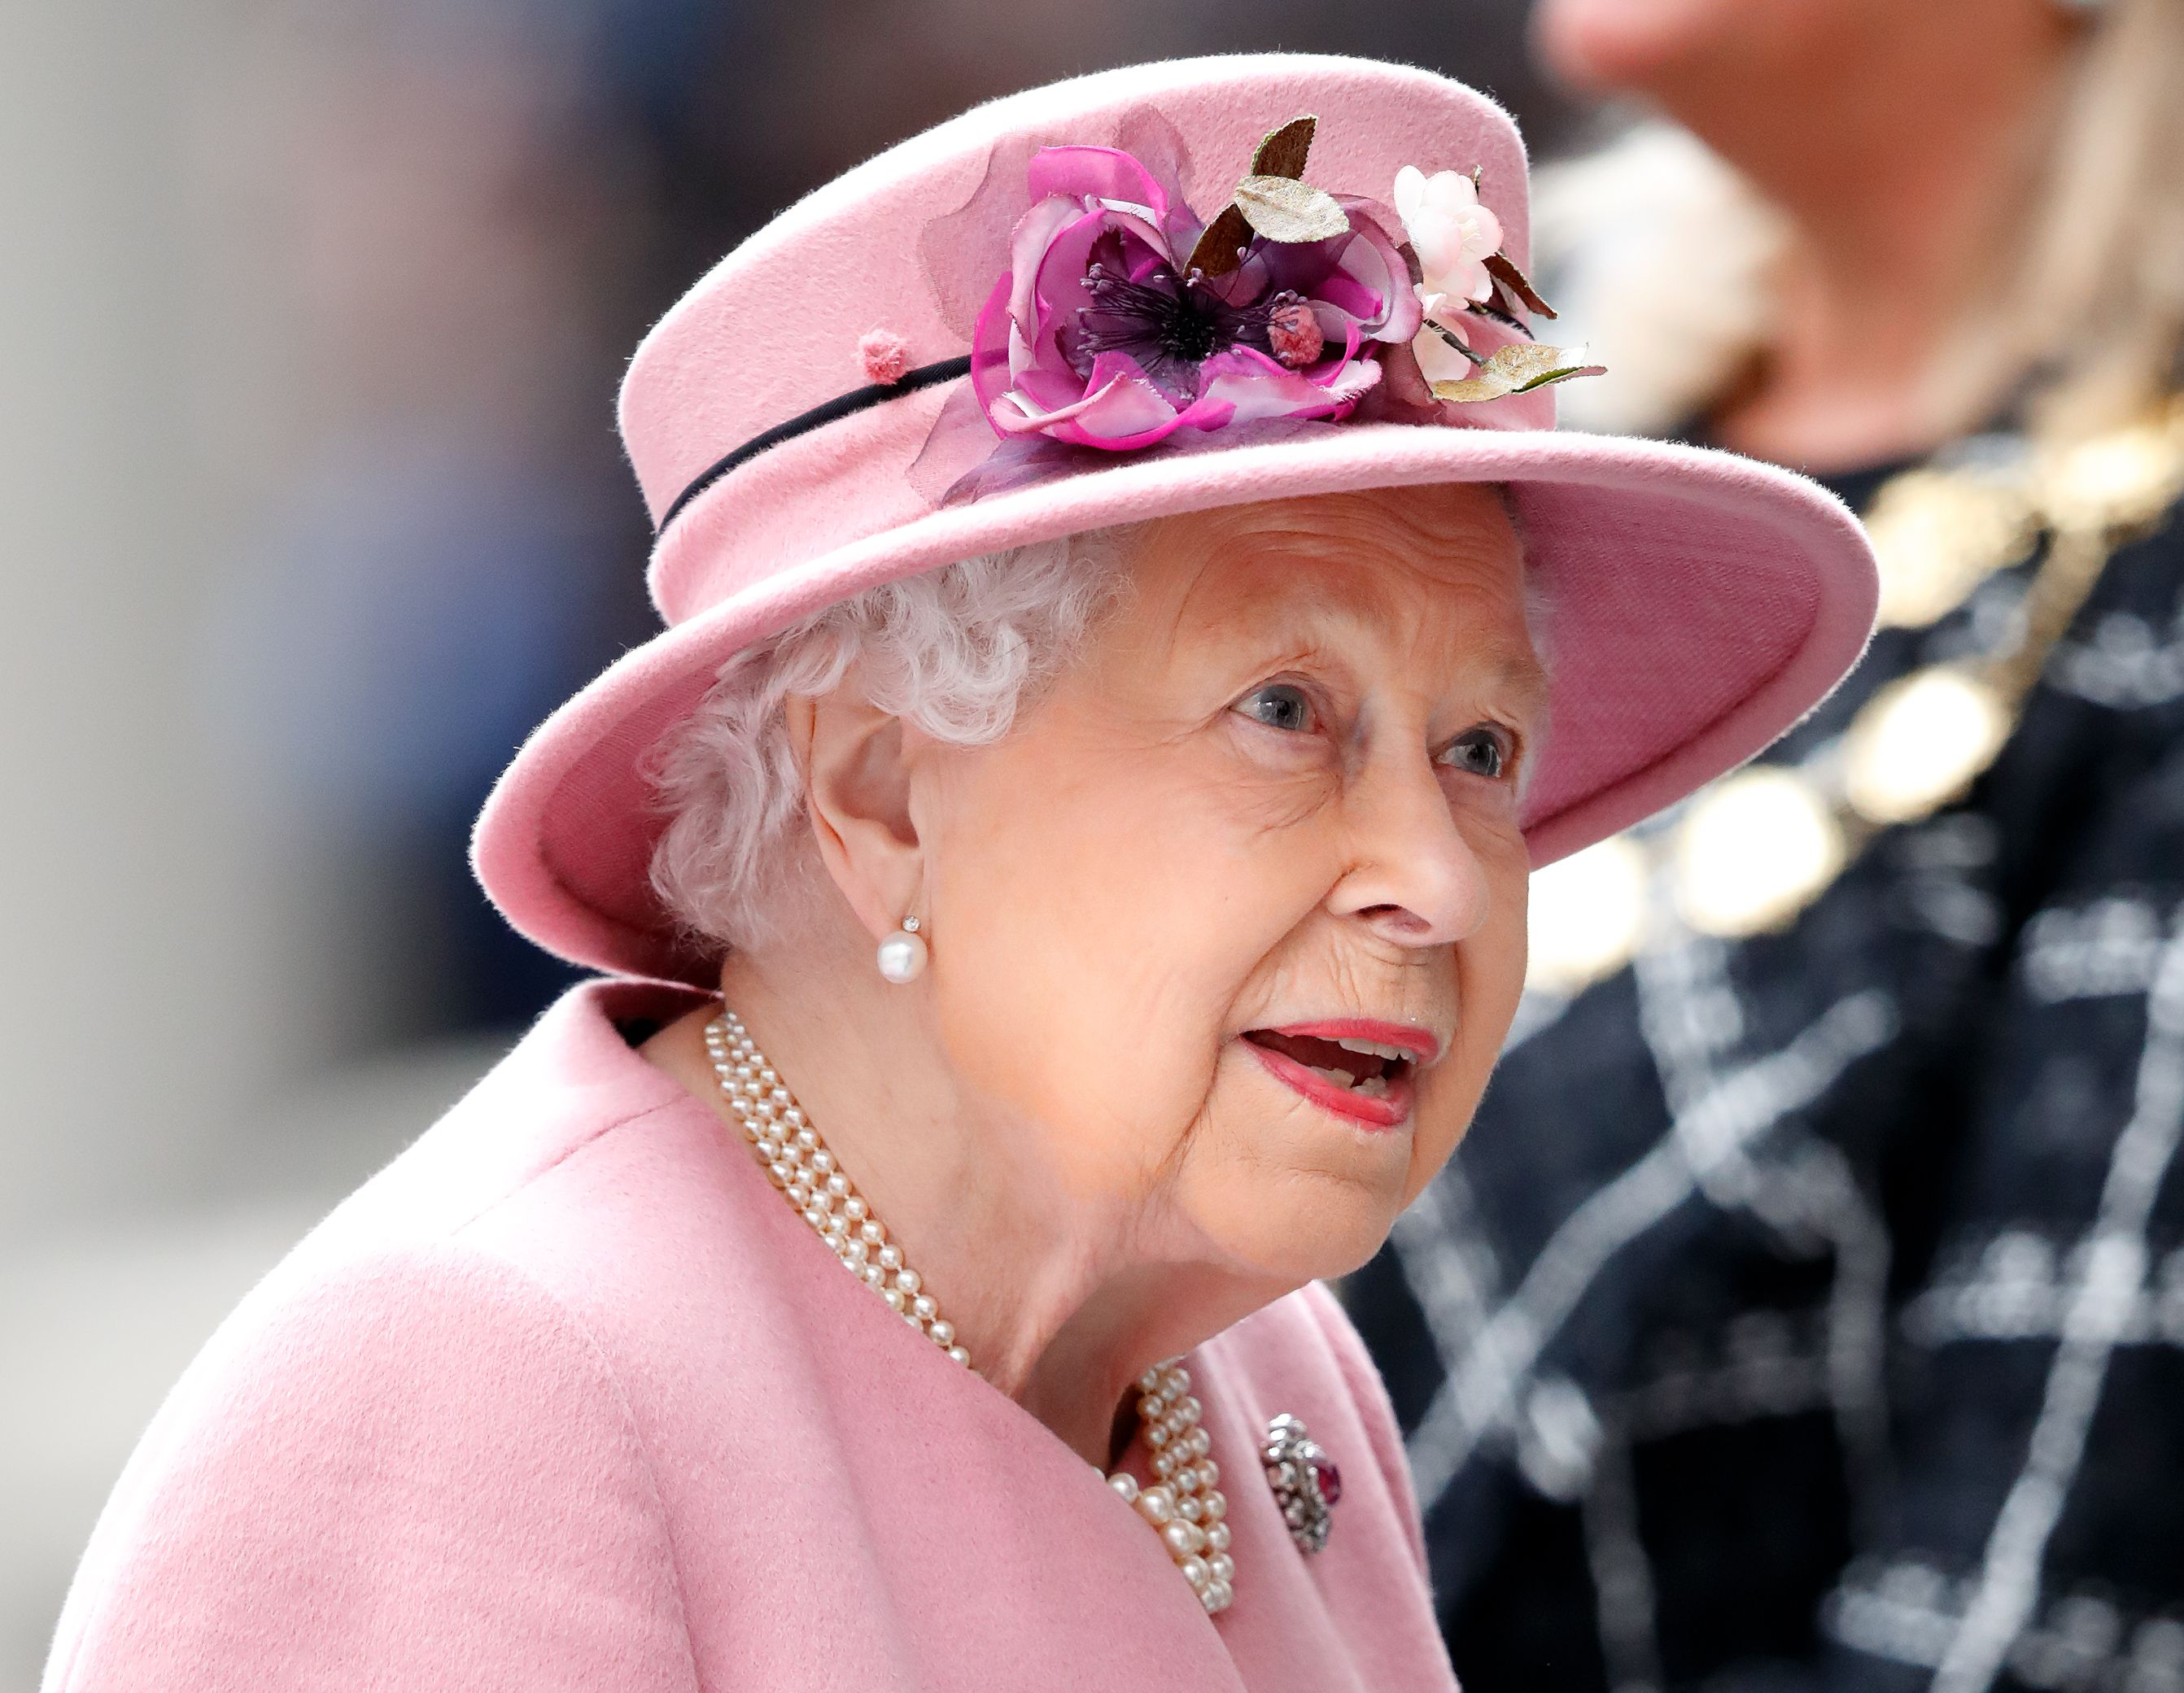 Queen Elizabeth Sends Condolences and a Donation in the Wake of Cyclone Idai